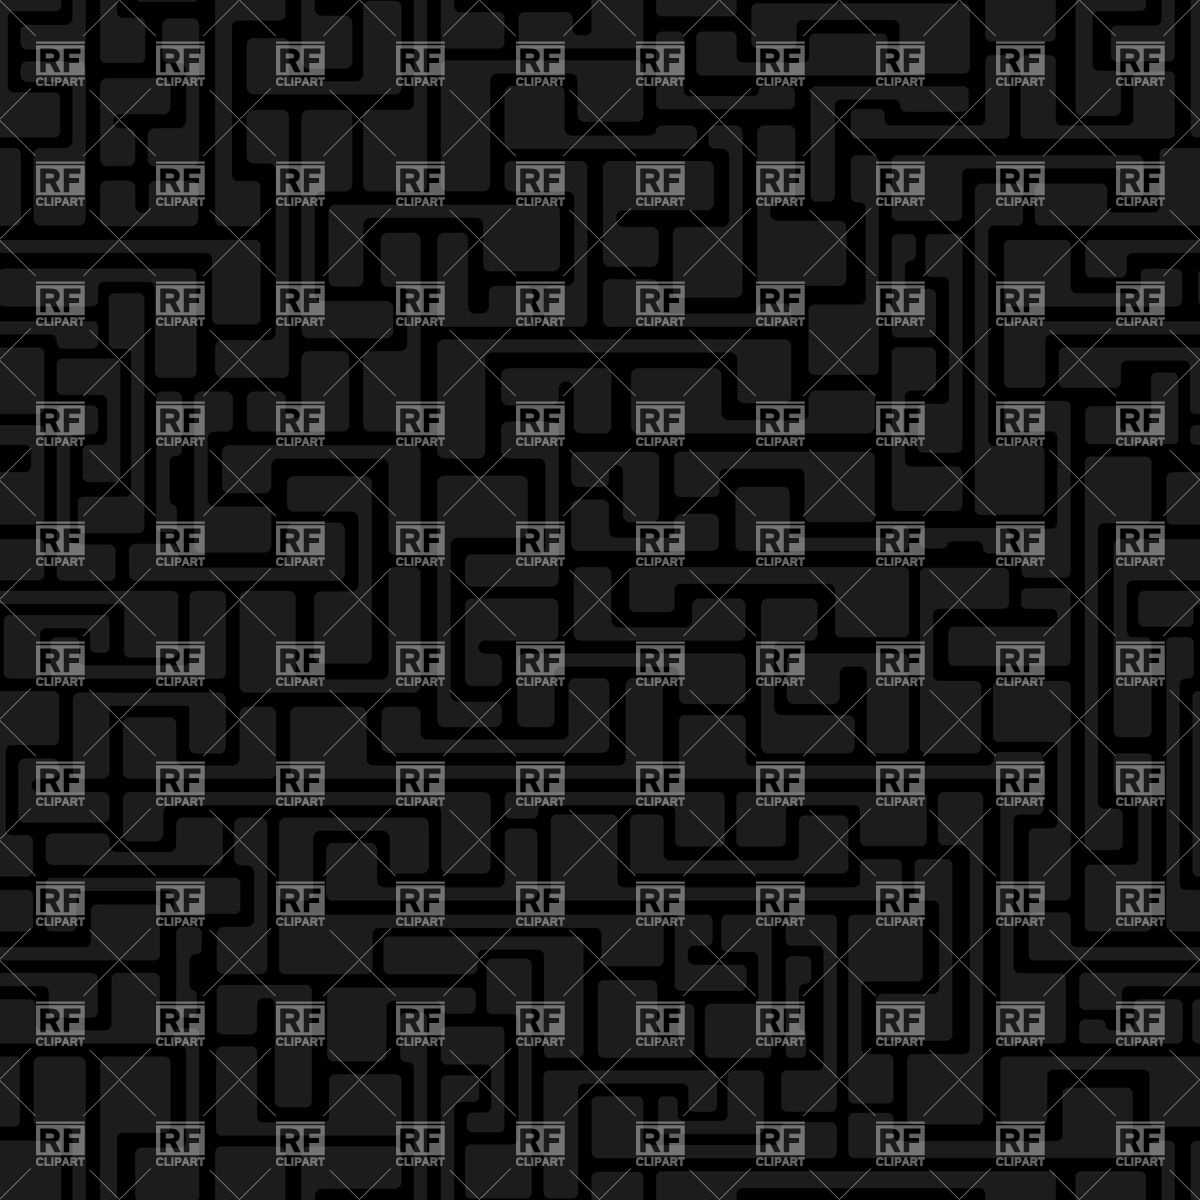 Seamless dark labyrinth pattern Vector Image #28216.